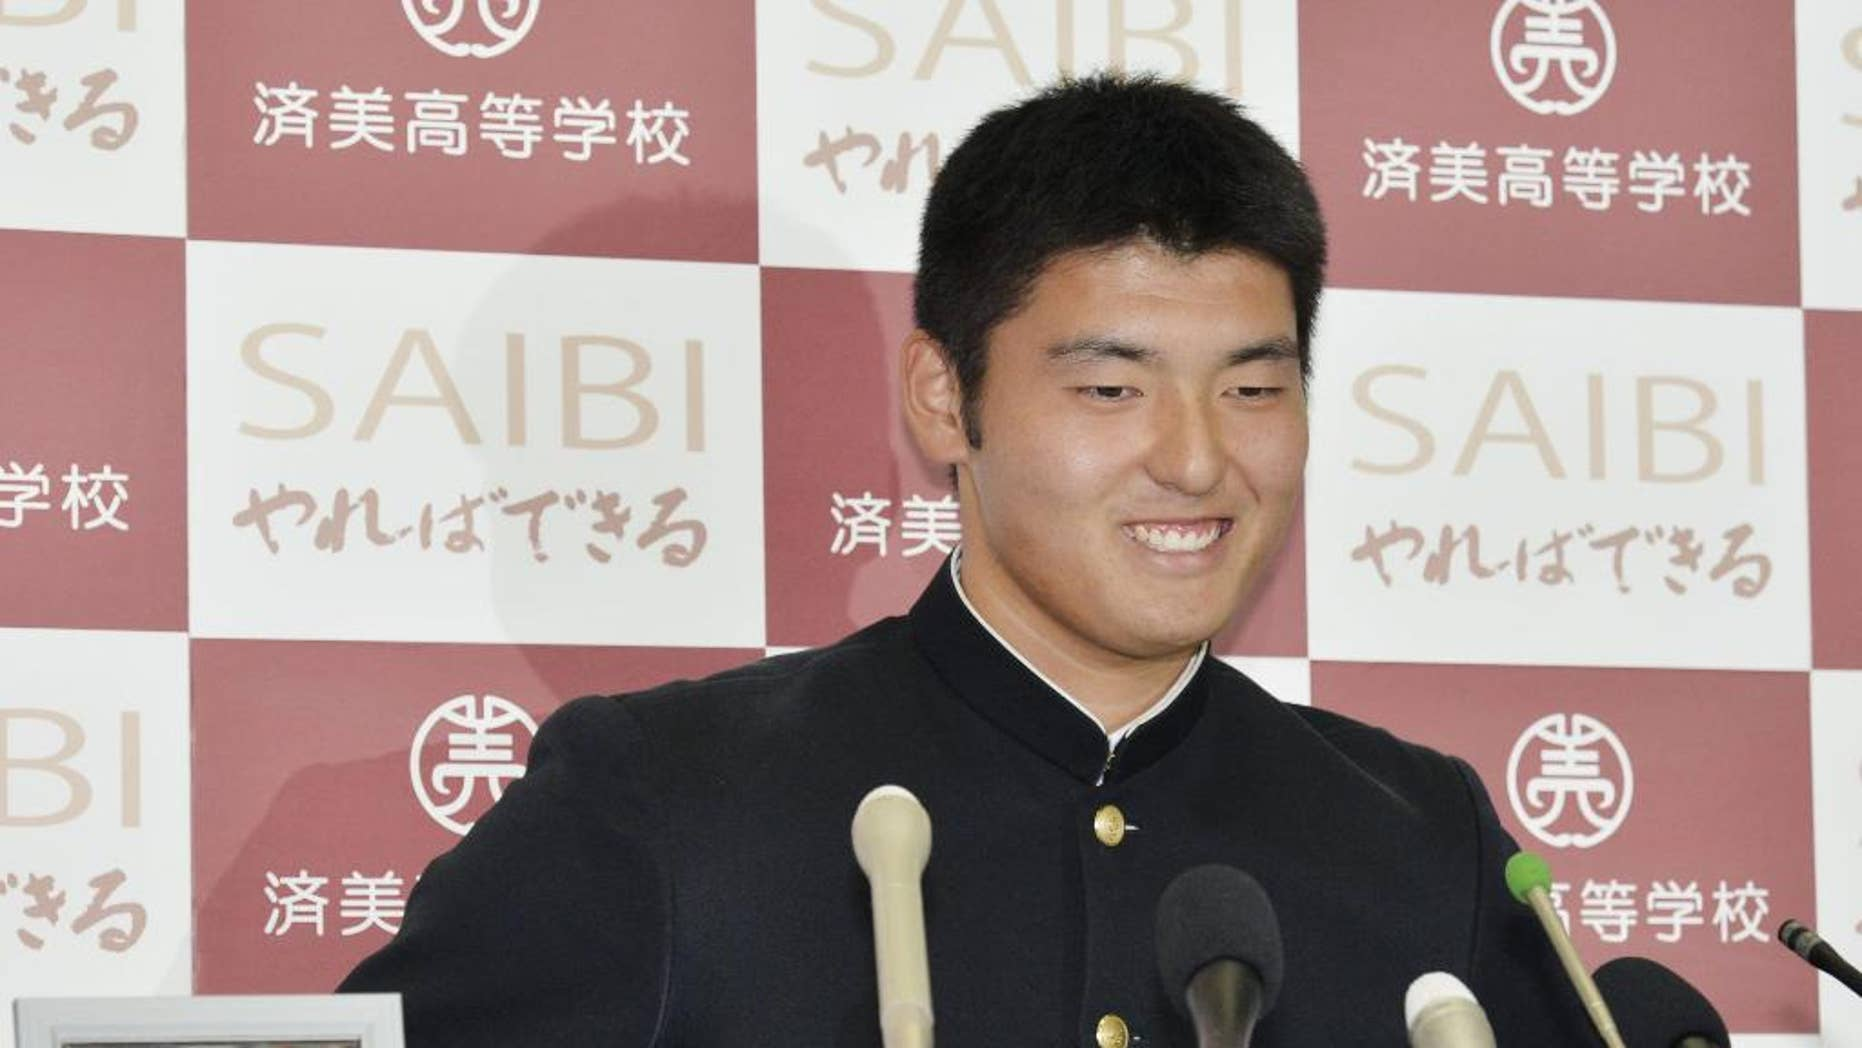 Japan's high school pitching star Tomohiro Anraku smiles next to a photo of his baseball team head coach Masanori Joko who died in September during a news conference at Saibi High School in Matsuyama, western Japan, Thursday, Oct. 23, 2014, after he was chosen first overall in Nippon Professional Baseball's amateur draft and was headed to the former team of New York Yankees pitcher Masahiro Tanaka. The Yakult Swallows and Rakuten Eagles selected Anraku, whose fastball has been clocked as high as 97 mph (156 kph), with the first and second picks respectively, and the Eagles won a lottery for the highly touted 17-year-old right-hander. (AP Photo/Kyodo News) JAPAN OUT, CREDIT MANDATORY